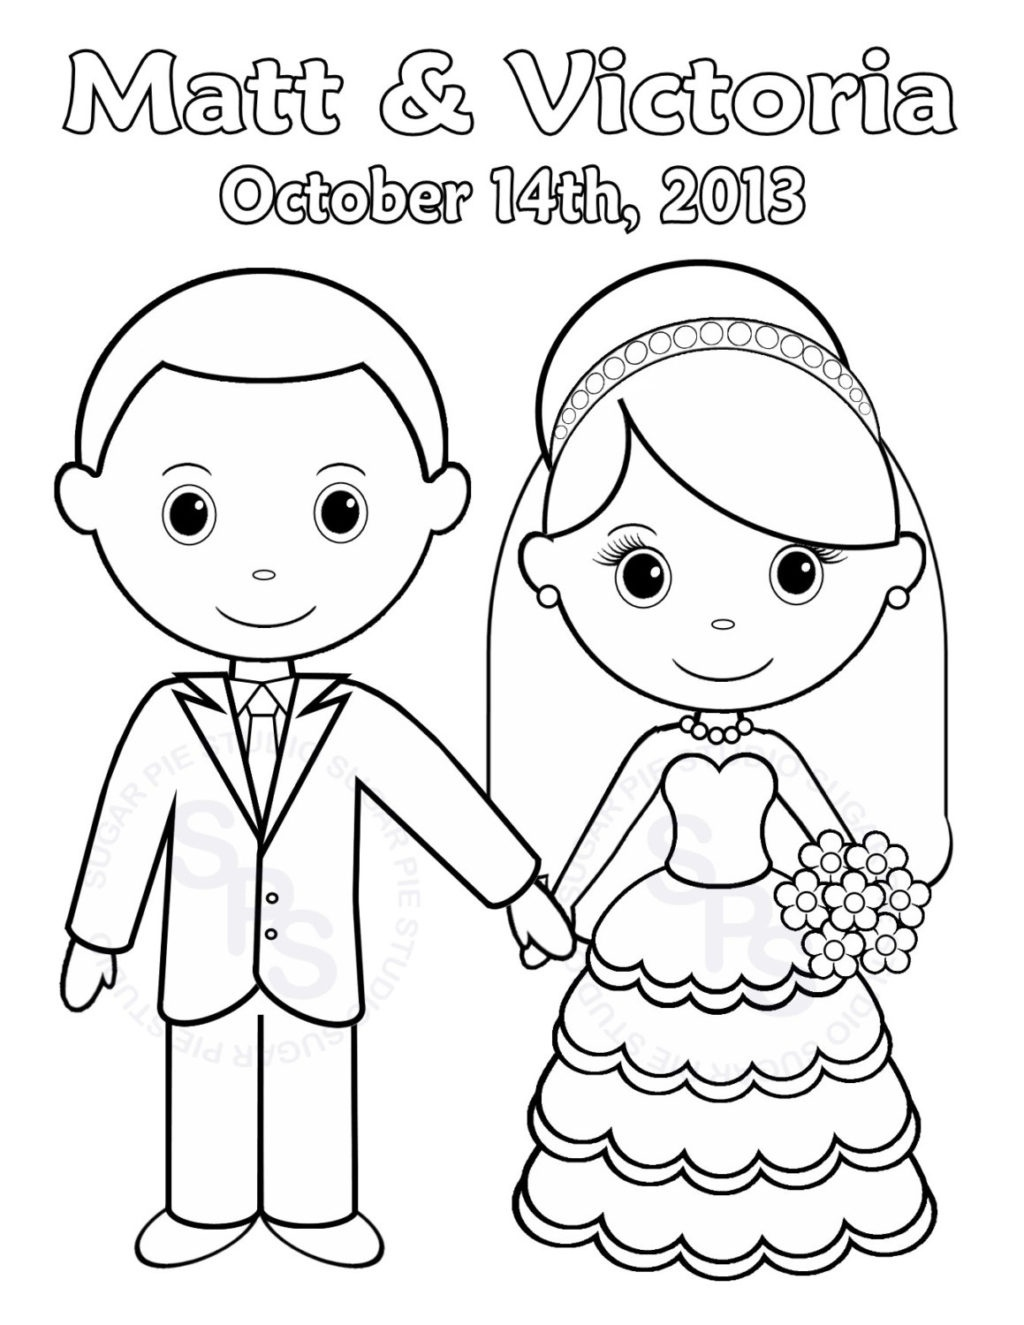 Coloring Book World ~ Coloring Pages Zoloftonline Buy Info Page - Wedding Coloring Book Free Printable